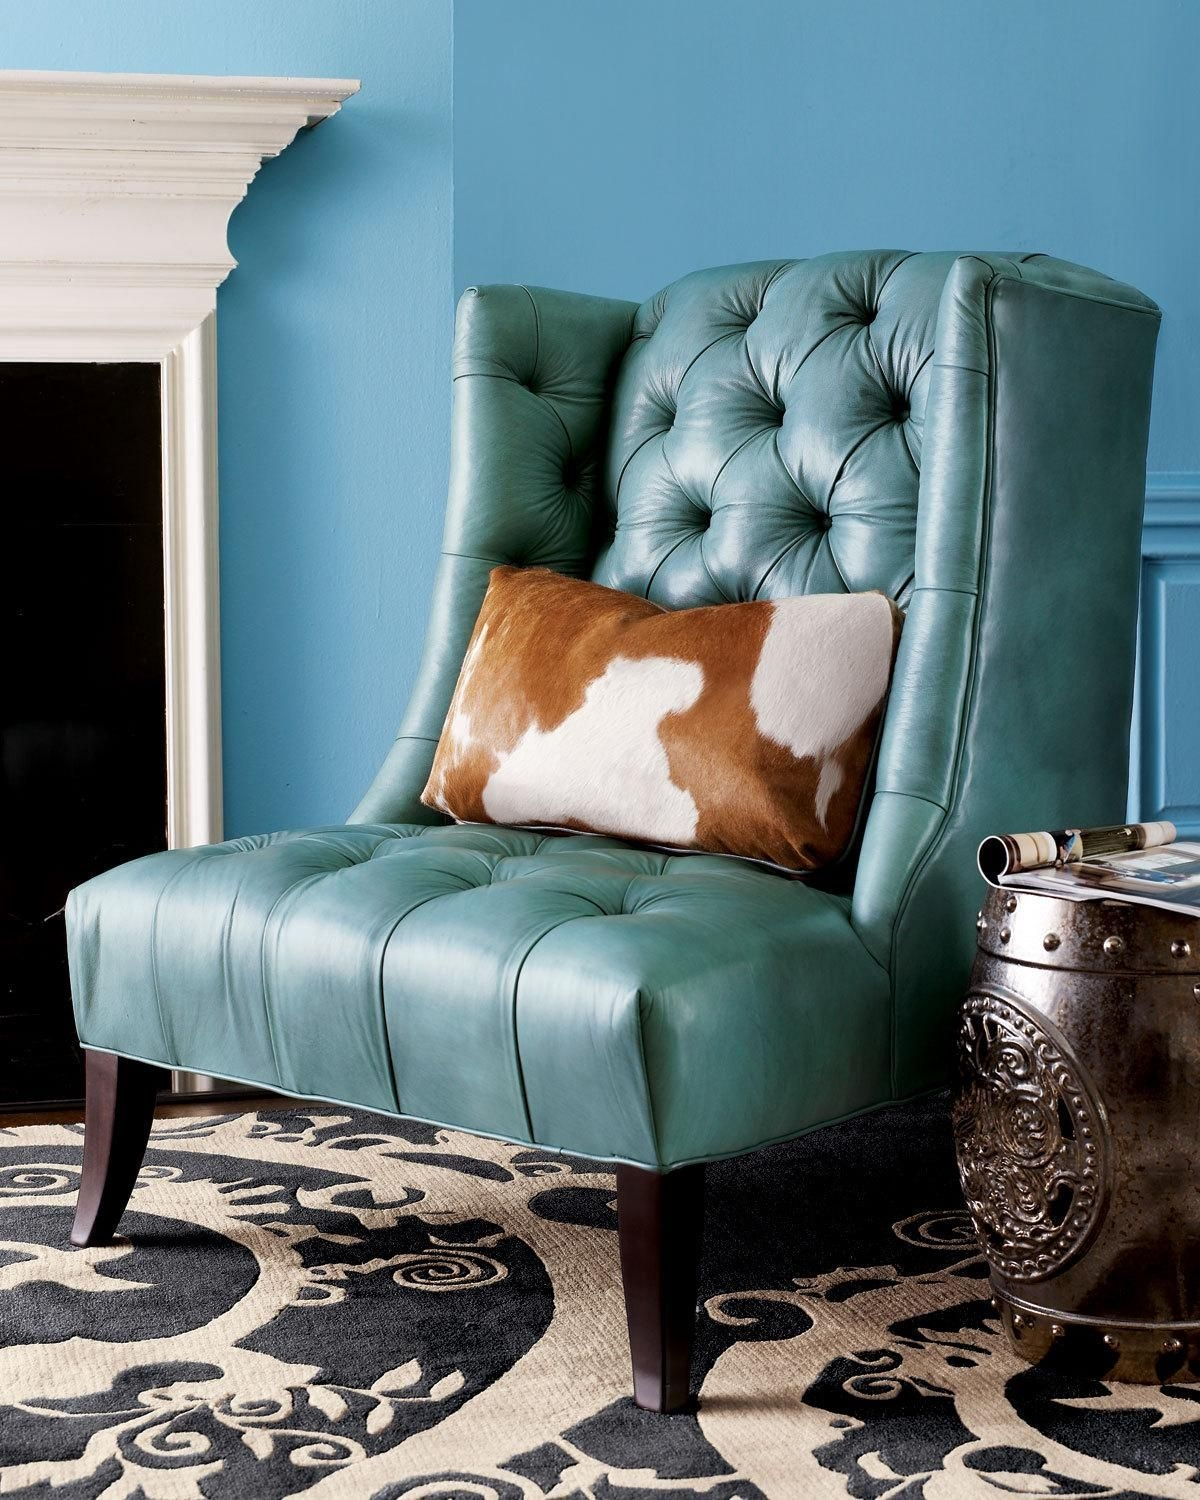 Turquoise Leather Chair With Cowhide Pillow